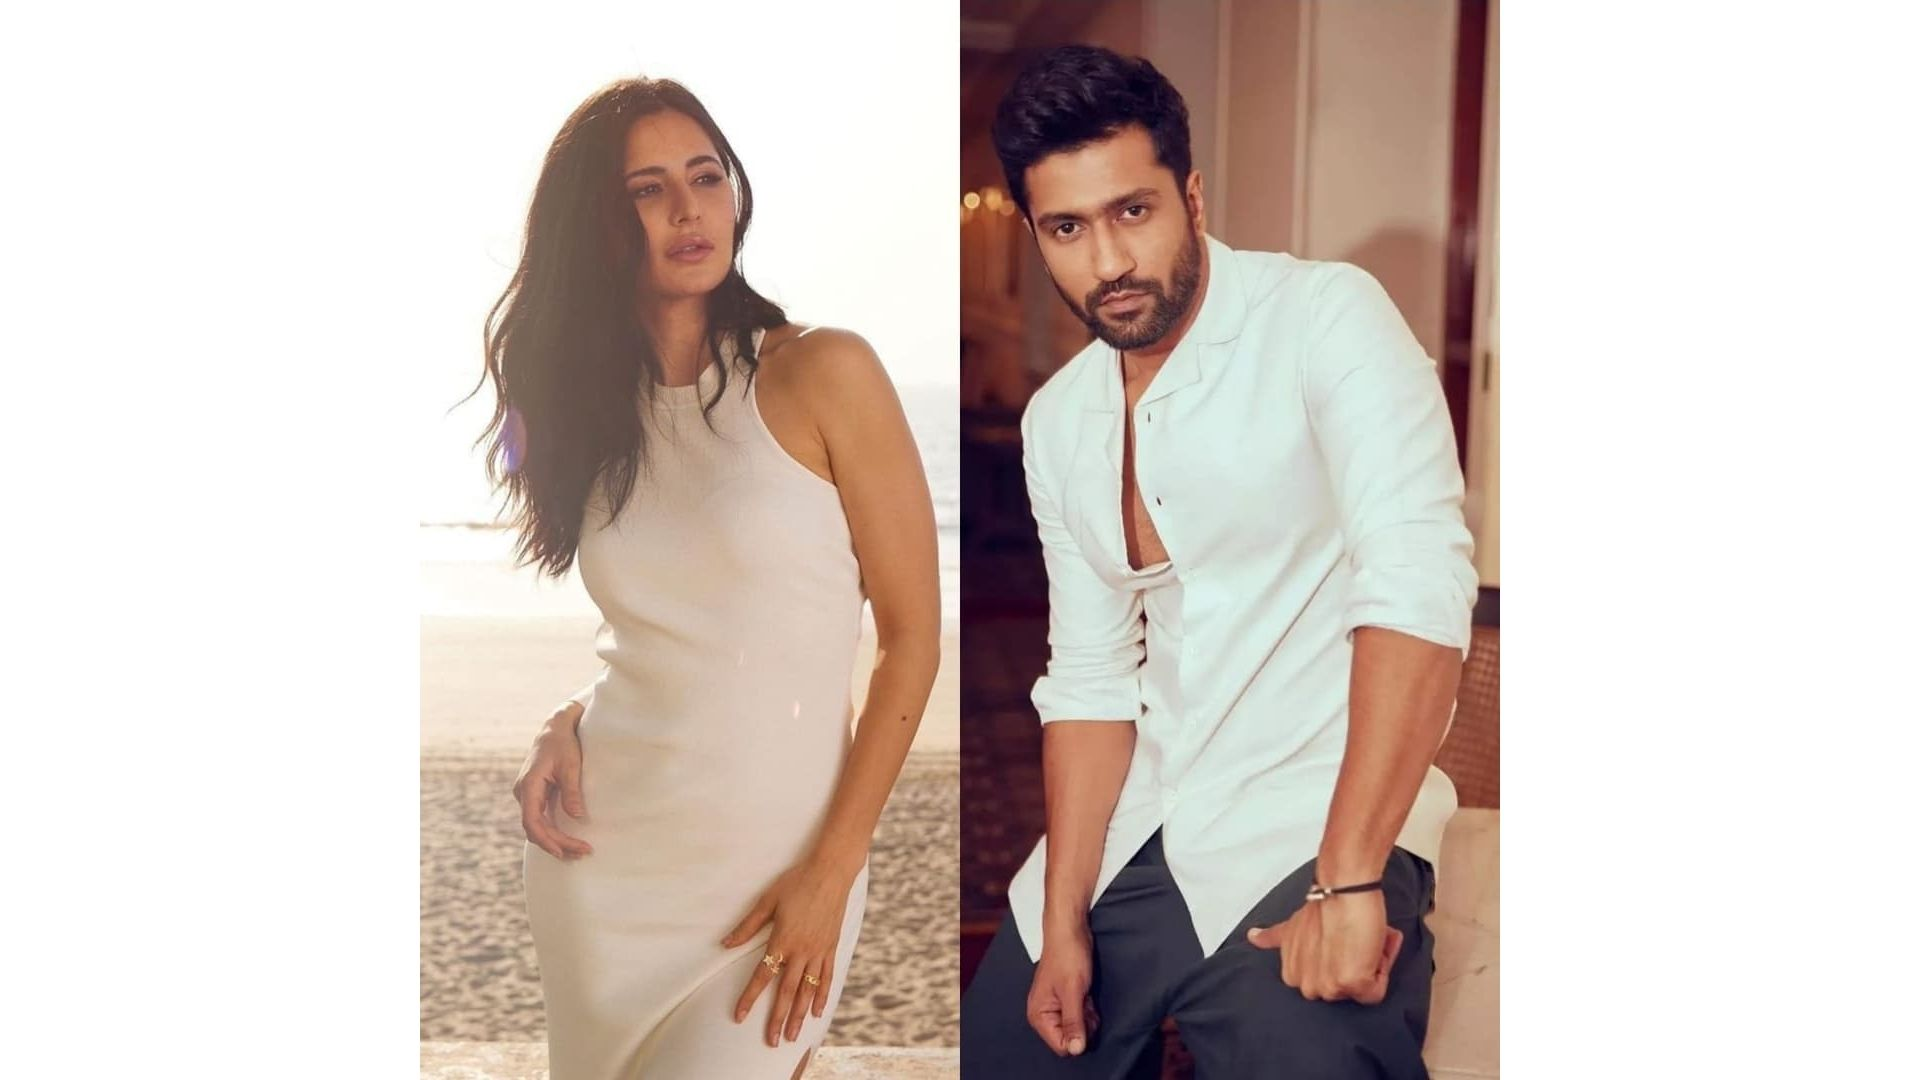 Katrina Kaif Hugs Vicky Kaushal And Congratulates Him For His Performance In His Digital Film; Fans Celebrate